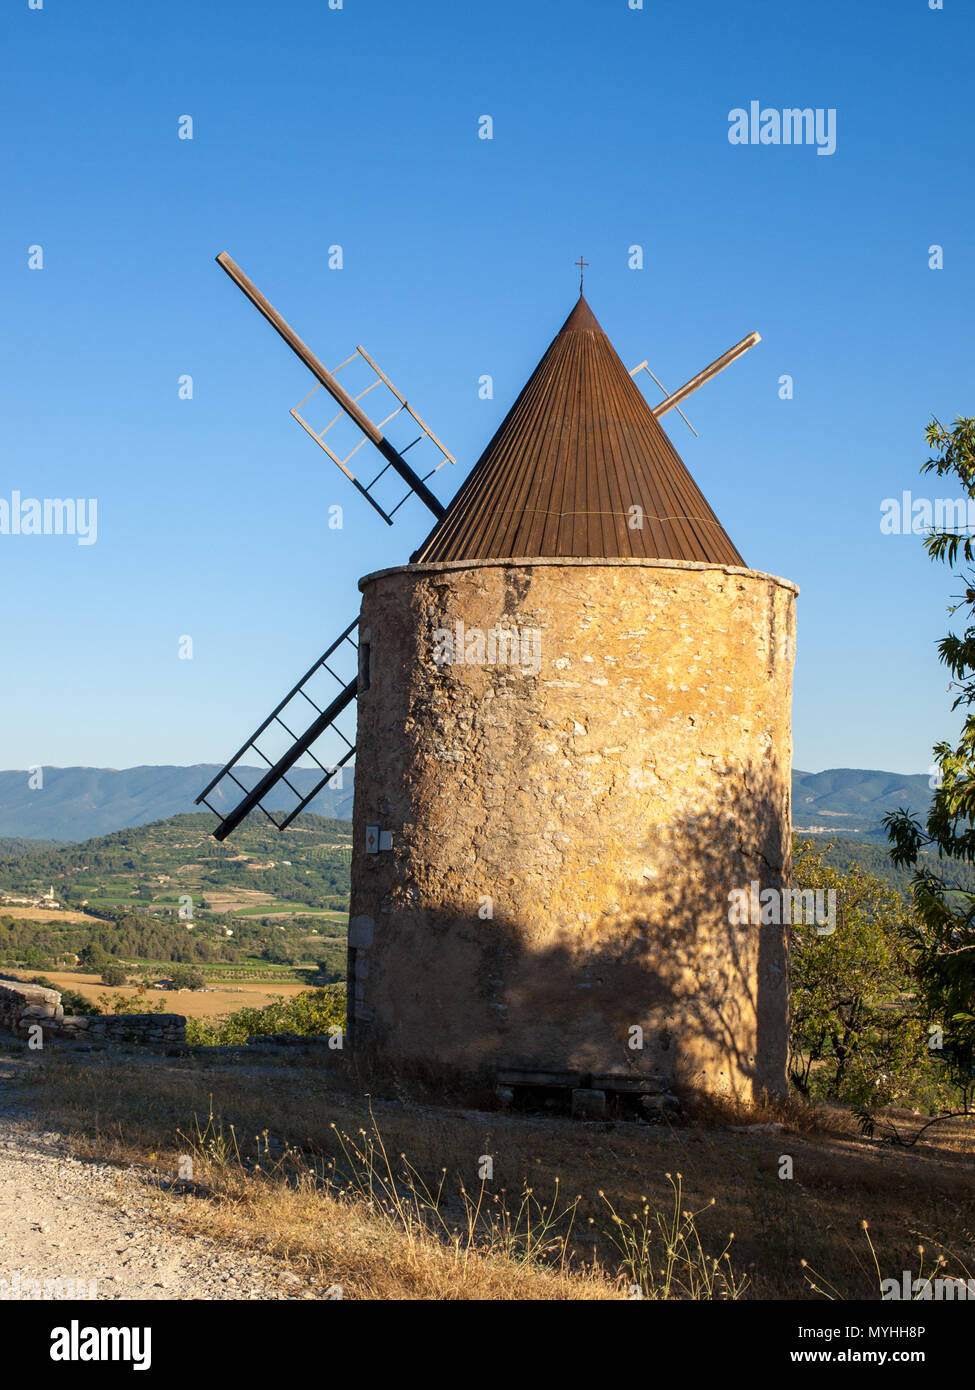 Old windmill in Saint-Saturnin-les-Apt Muehle in Provence, France - Stock Image